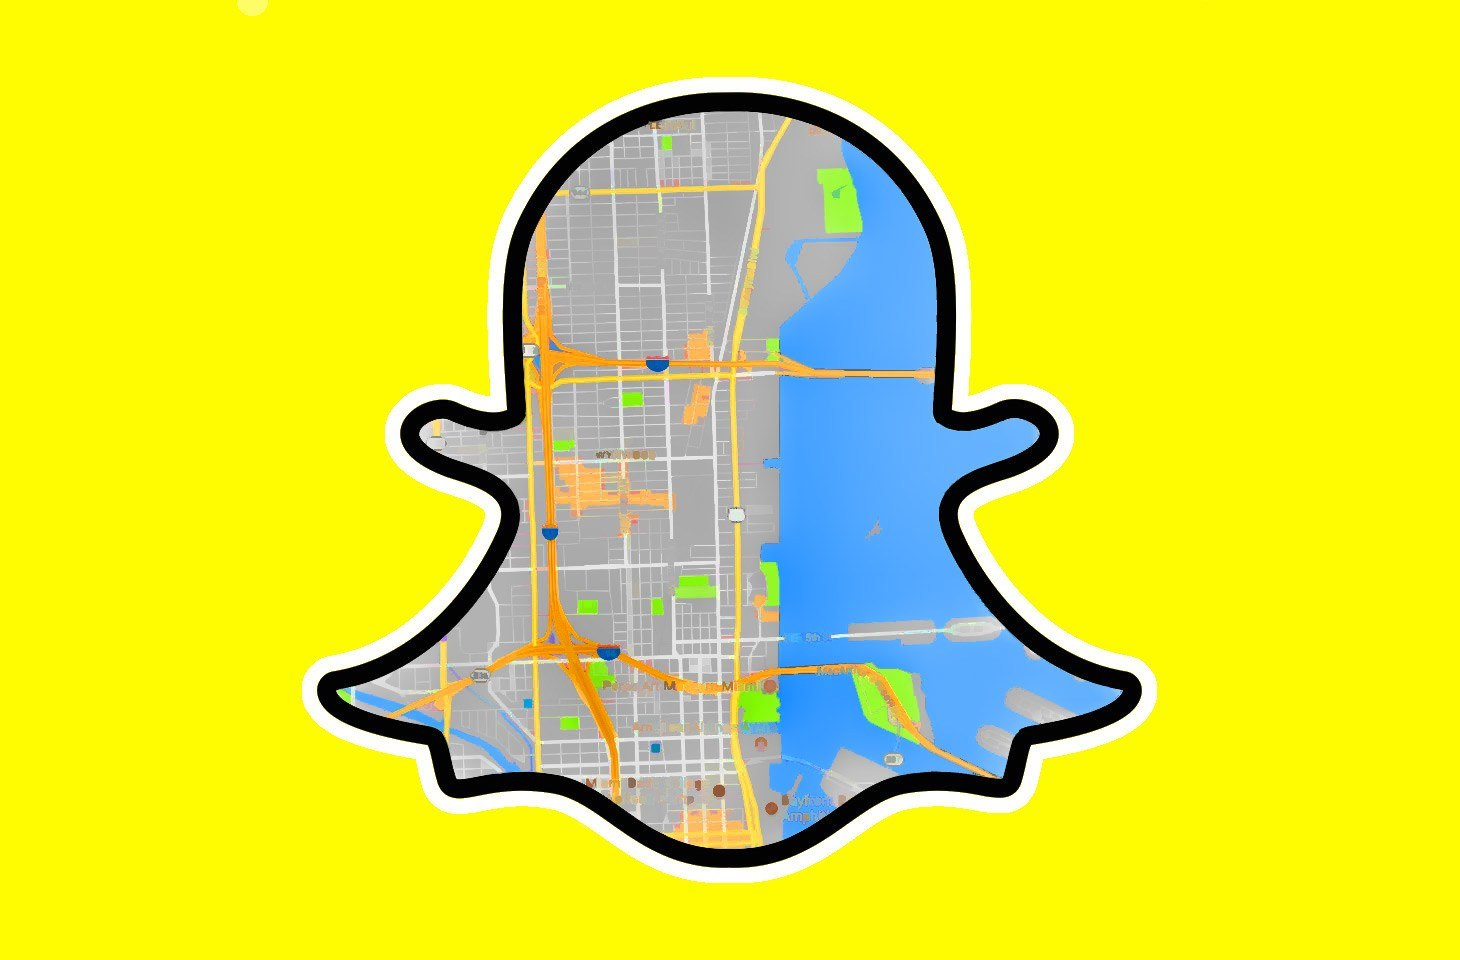 Snap Map Security and Privacy concerns